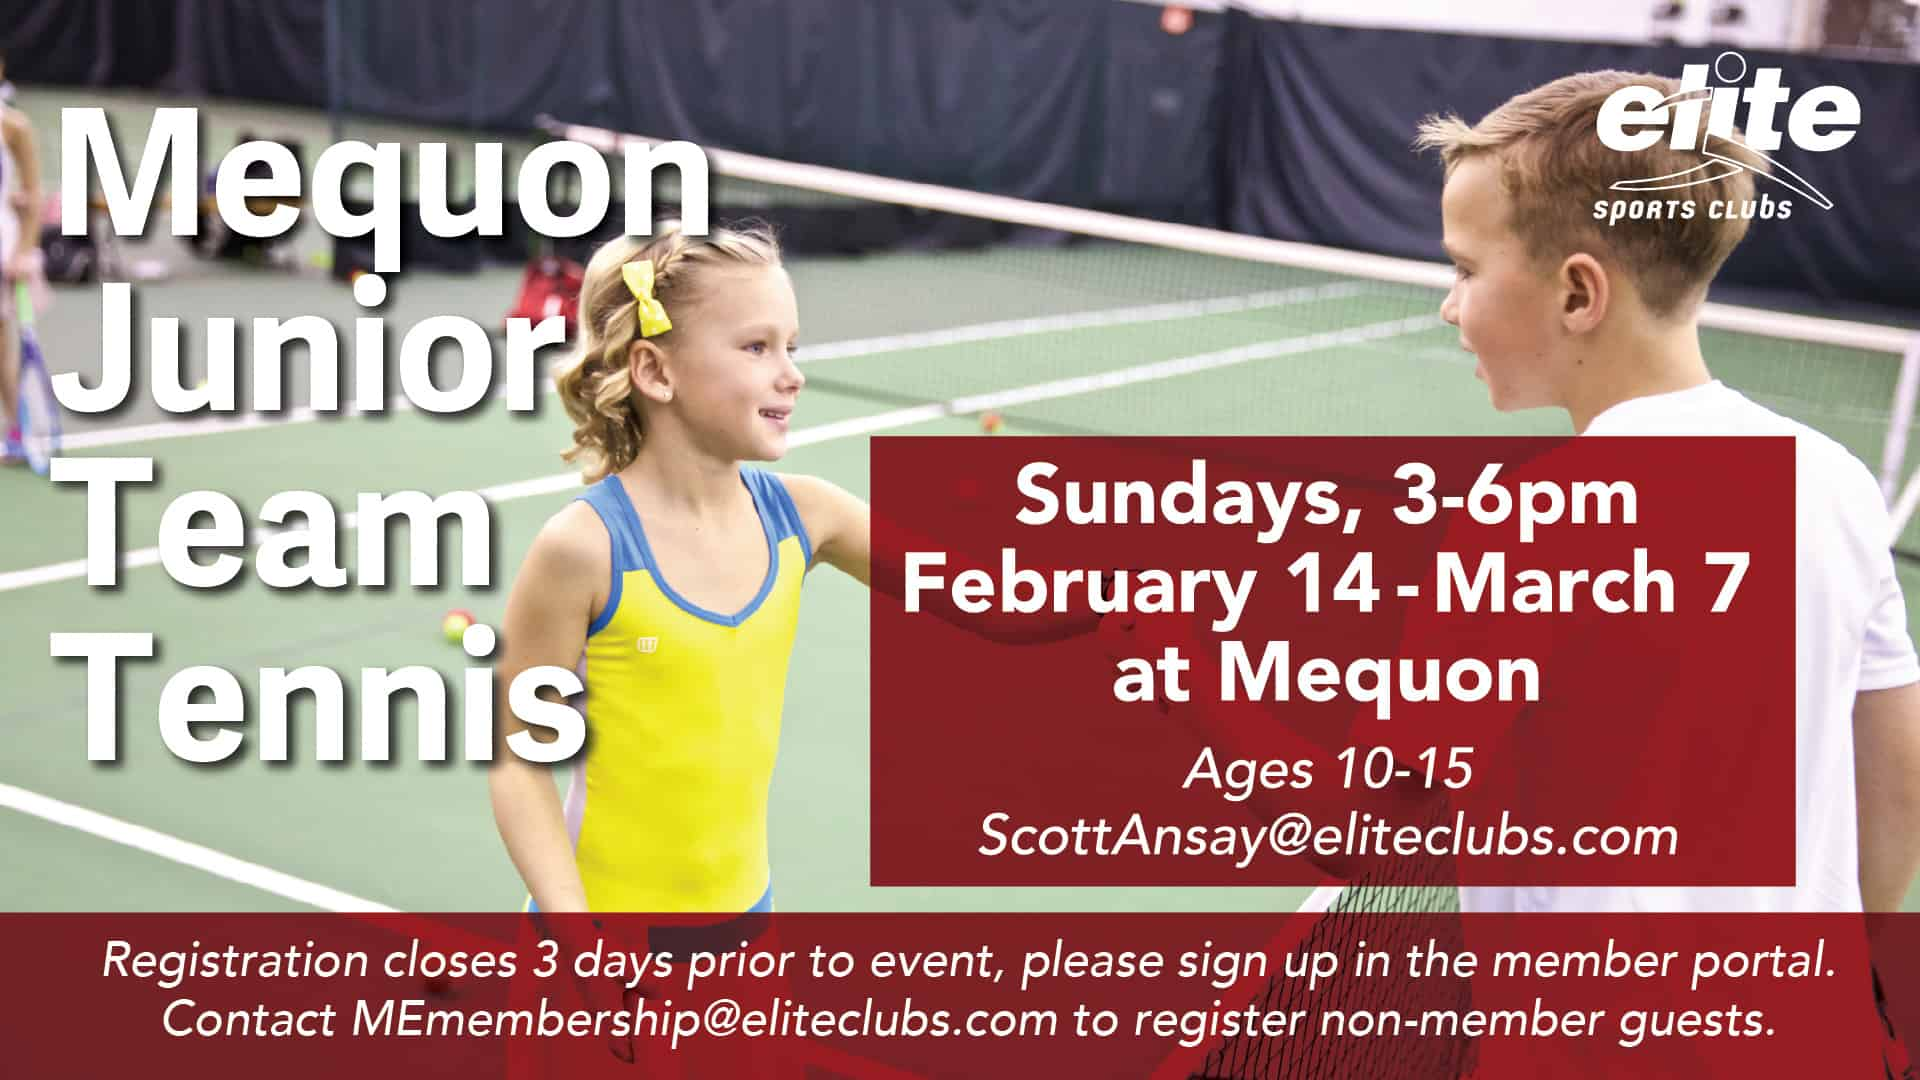 Mequon Junior Team Tennis - Elite Mequon - Winter 2021